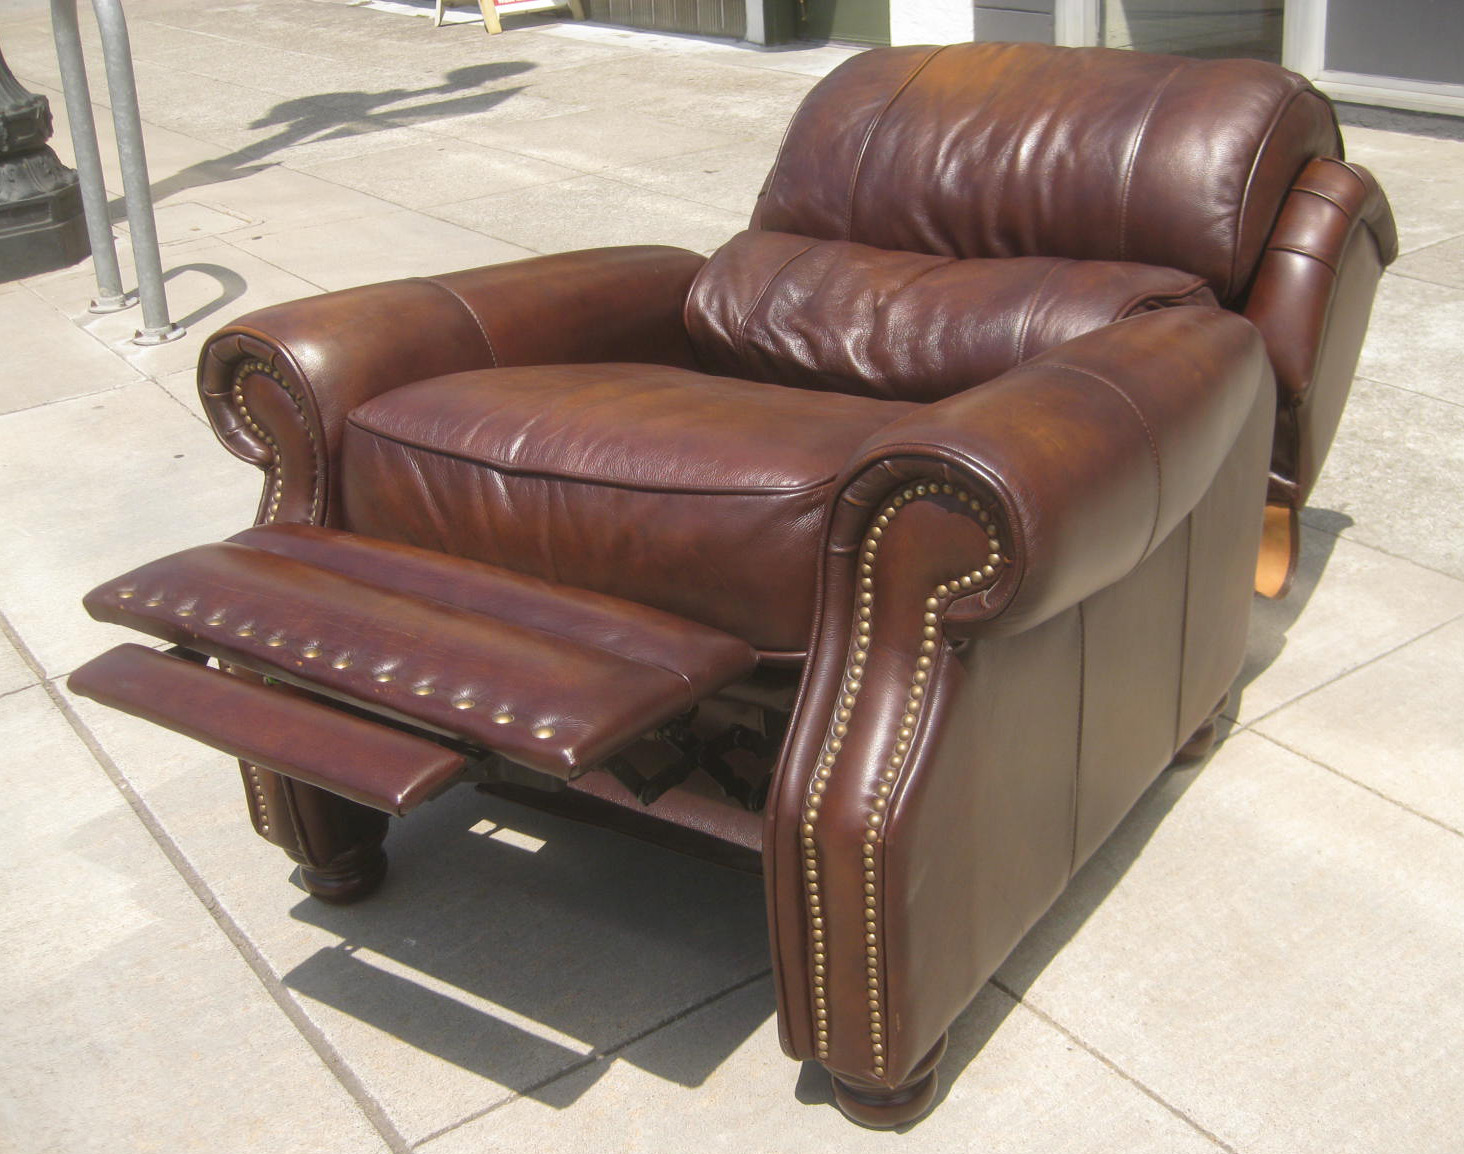 UHURU FURNITURE & COLLECTIBLES: SOLD - La-Z-Boy Leather ...